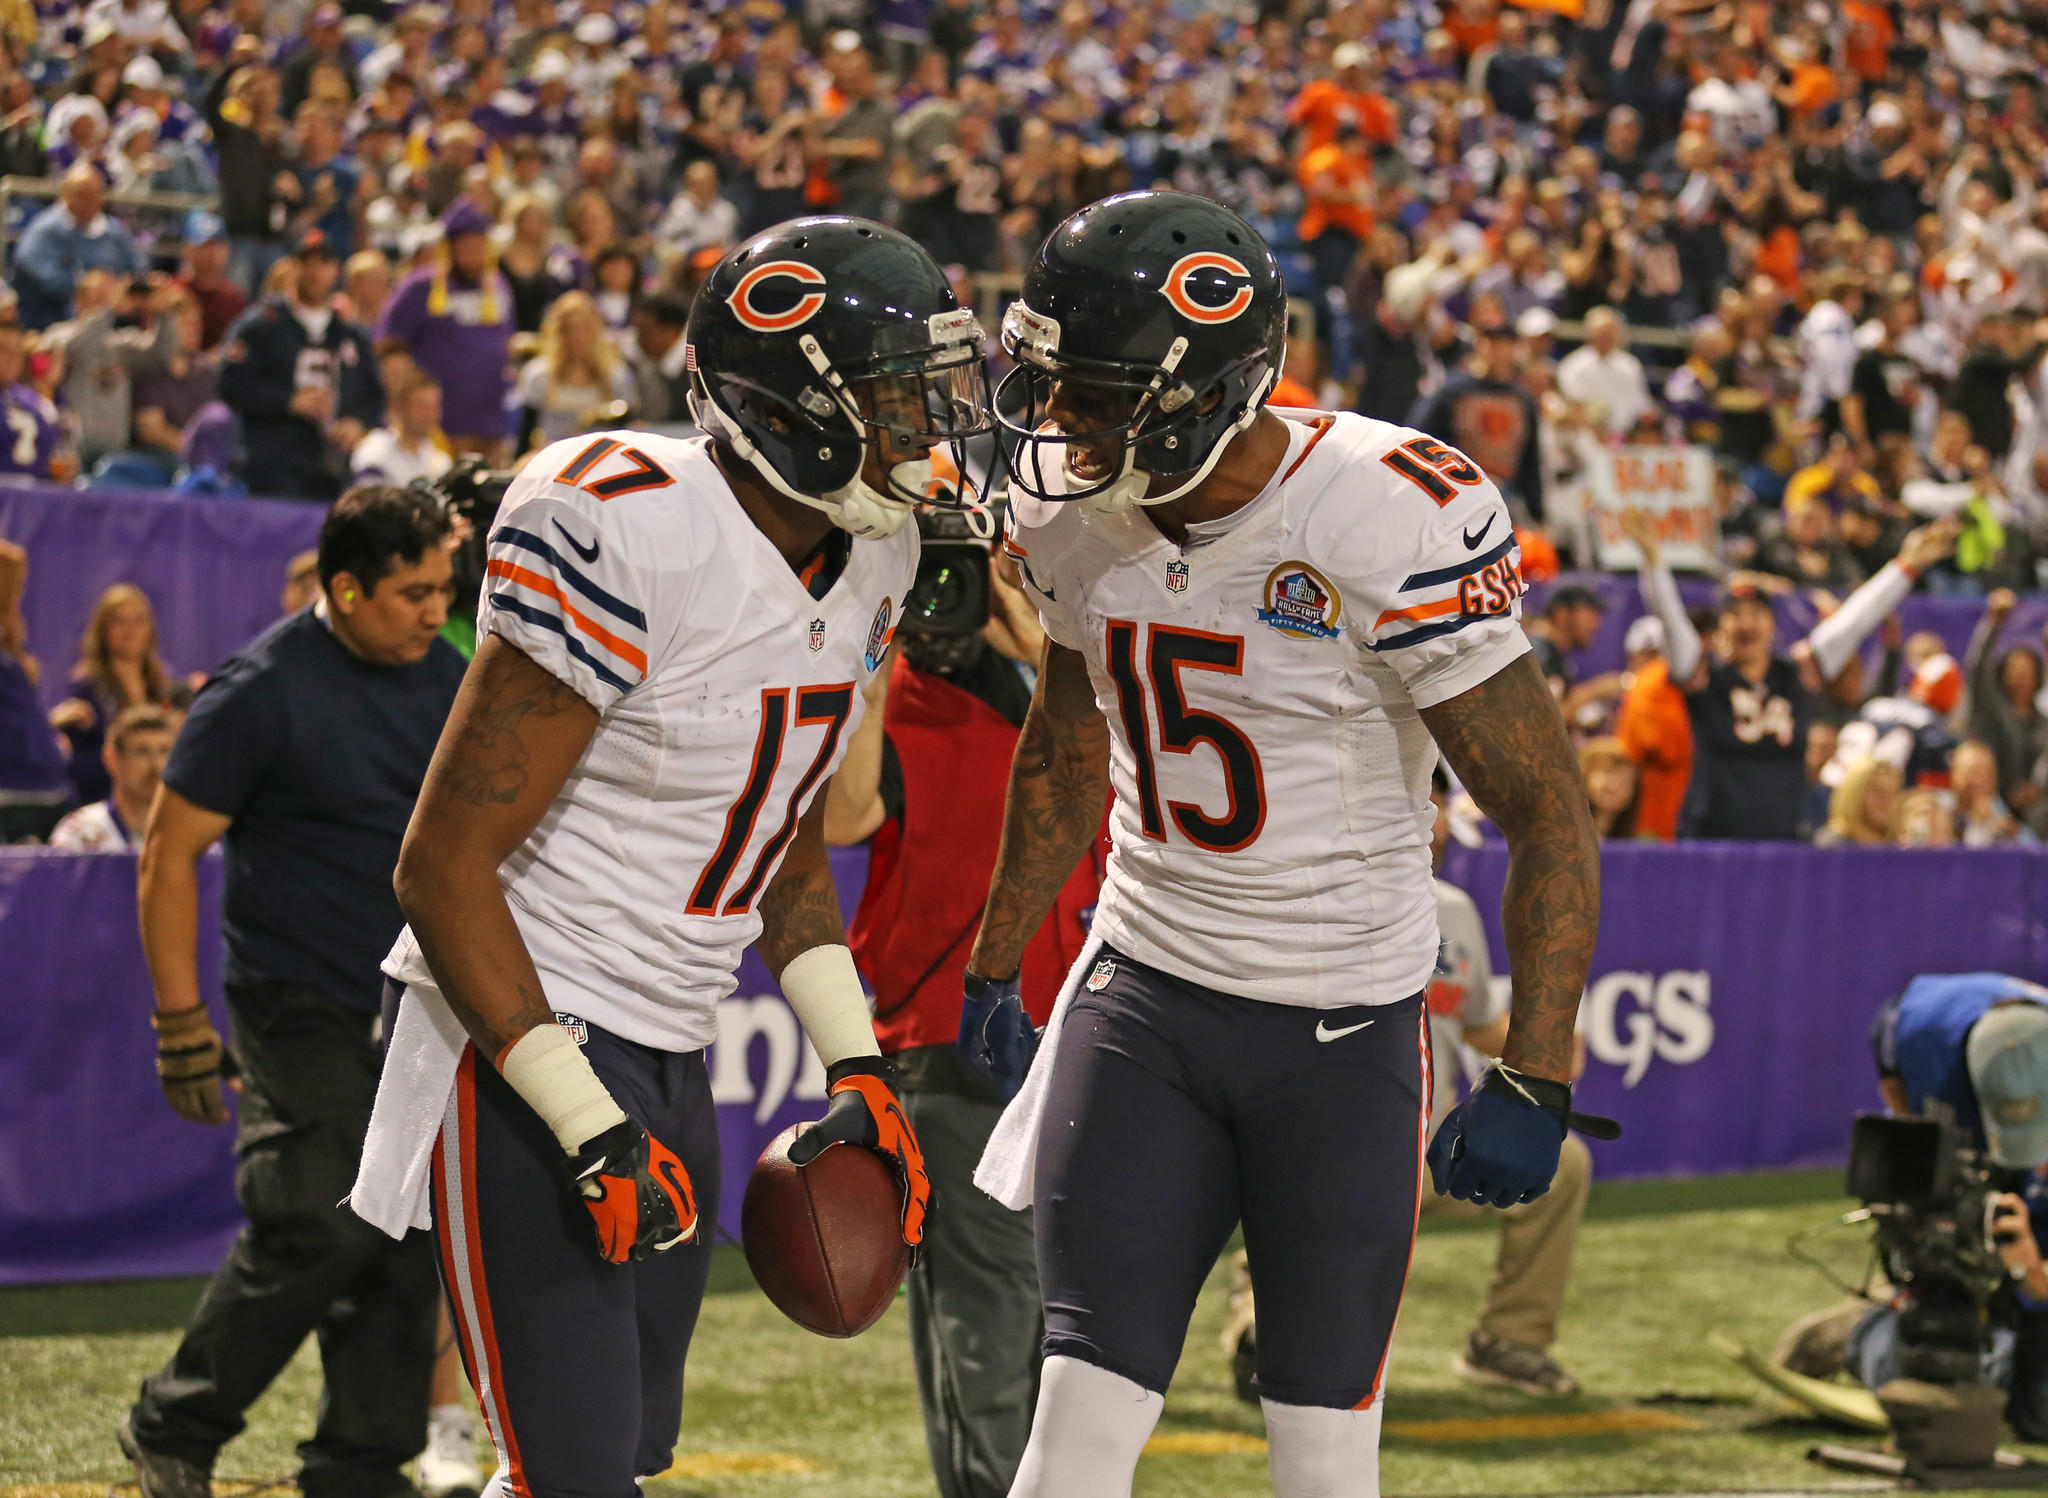 Wide receiver Alshon Jeffery celebrates with Brandon Marshall after with his touchdown against the Vikings.